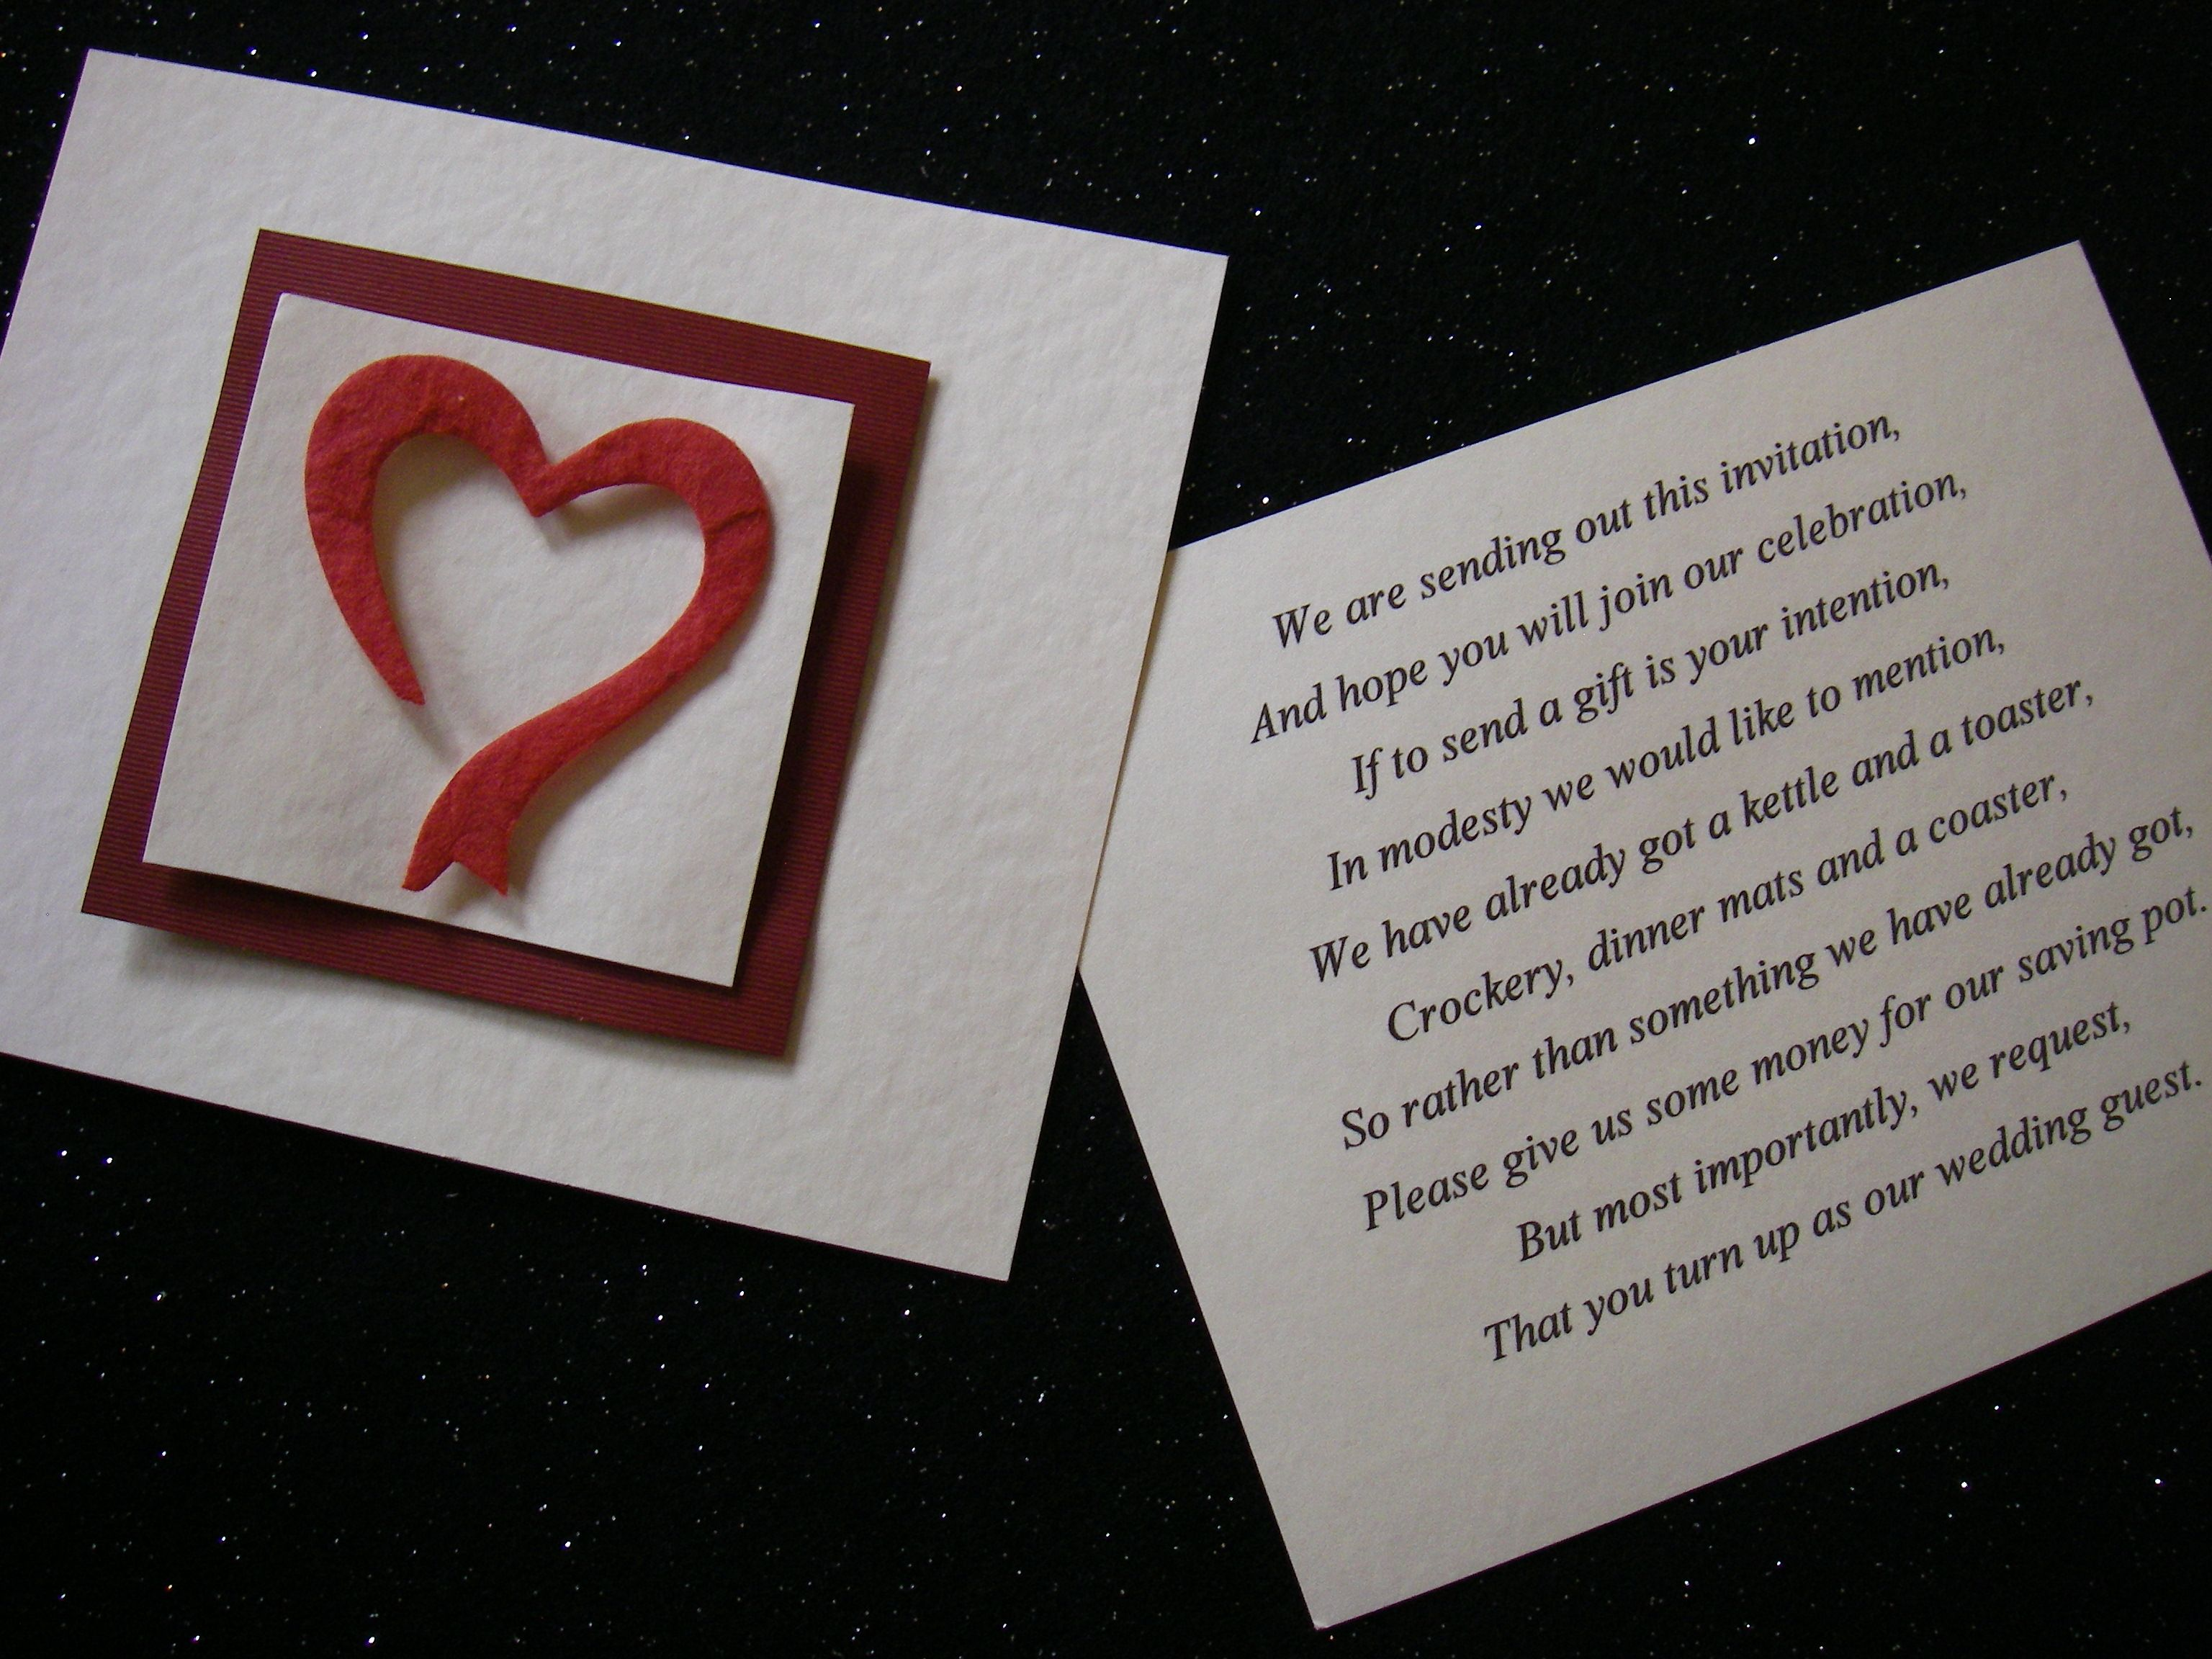 Asking For Gifts On Wedding Invitations: Wedding Gift Poems! Little Cards In Your Invites Politely